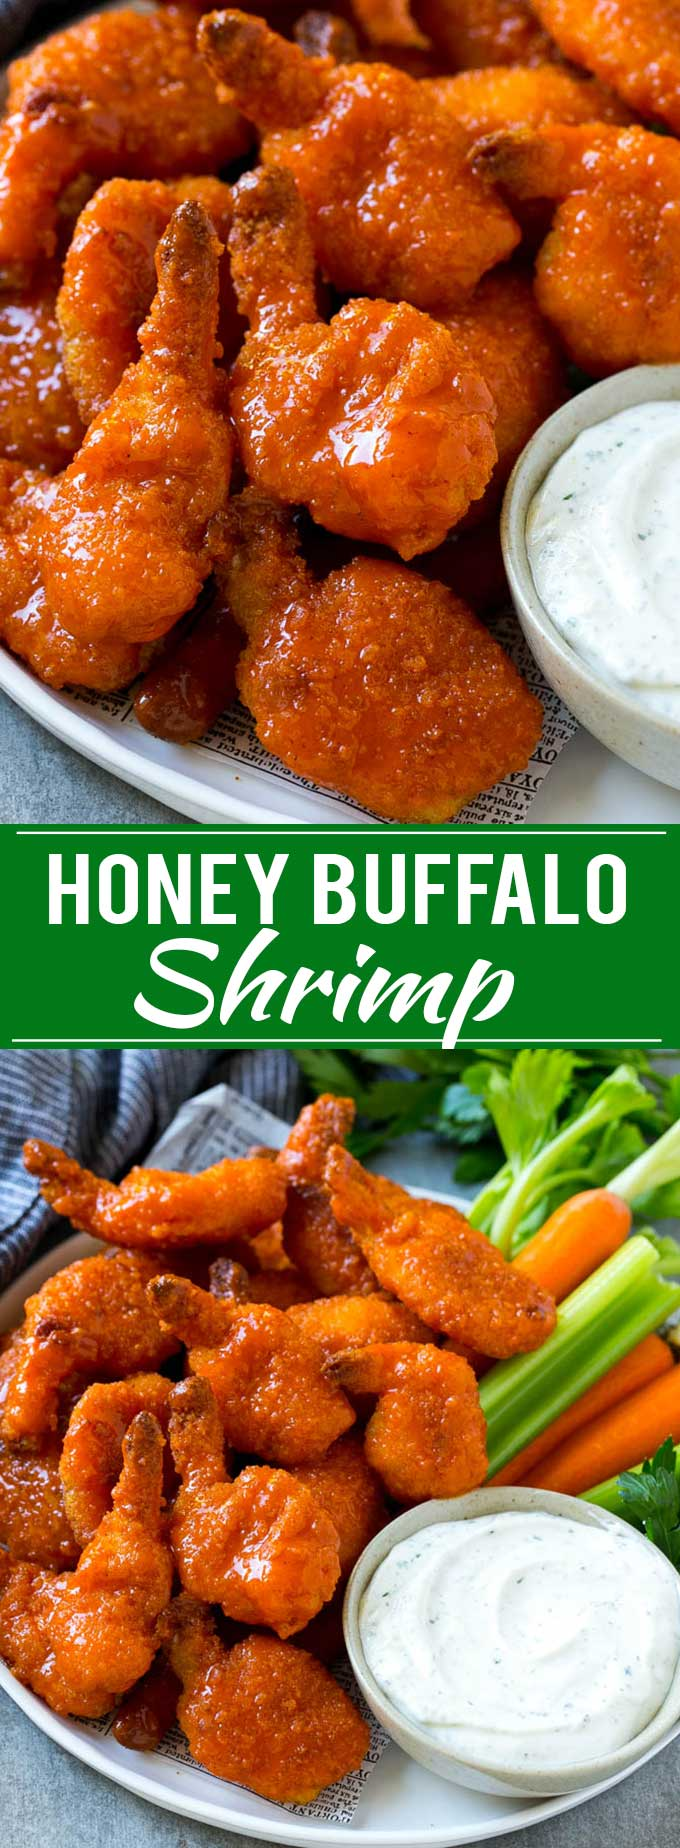 Buffalo Shrimp Recipe | Crispy Buffalo Shrimp | Fried Shrimp | Shrimp Appetizer